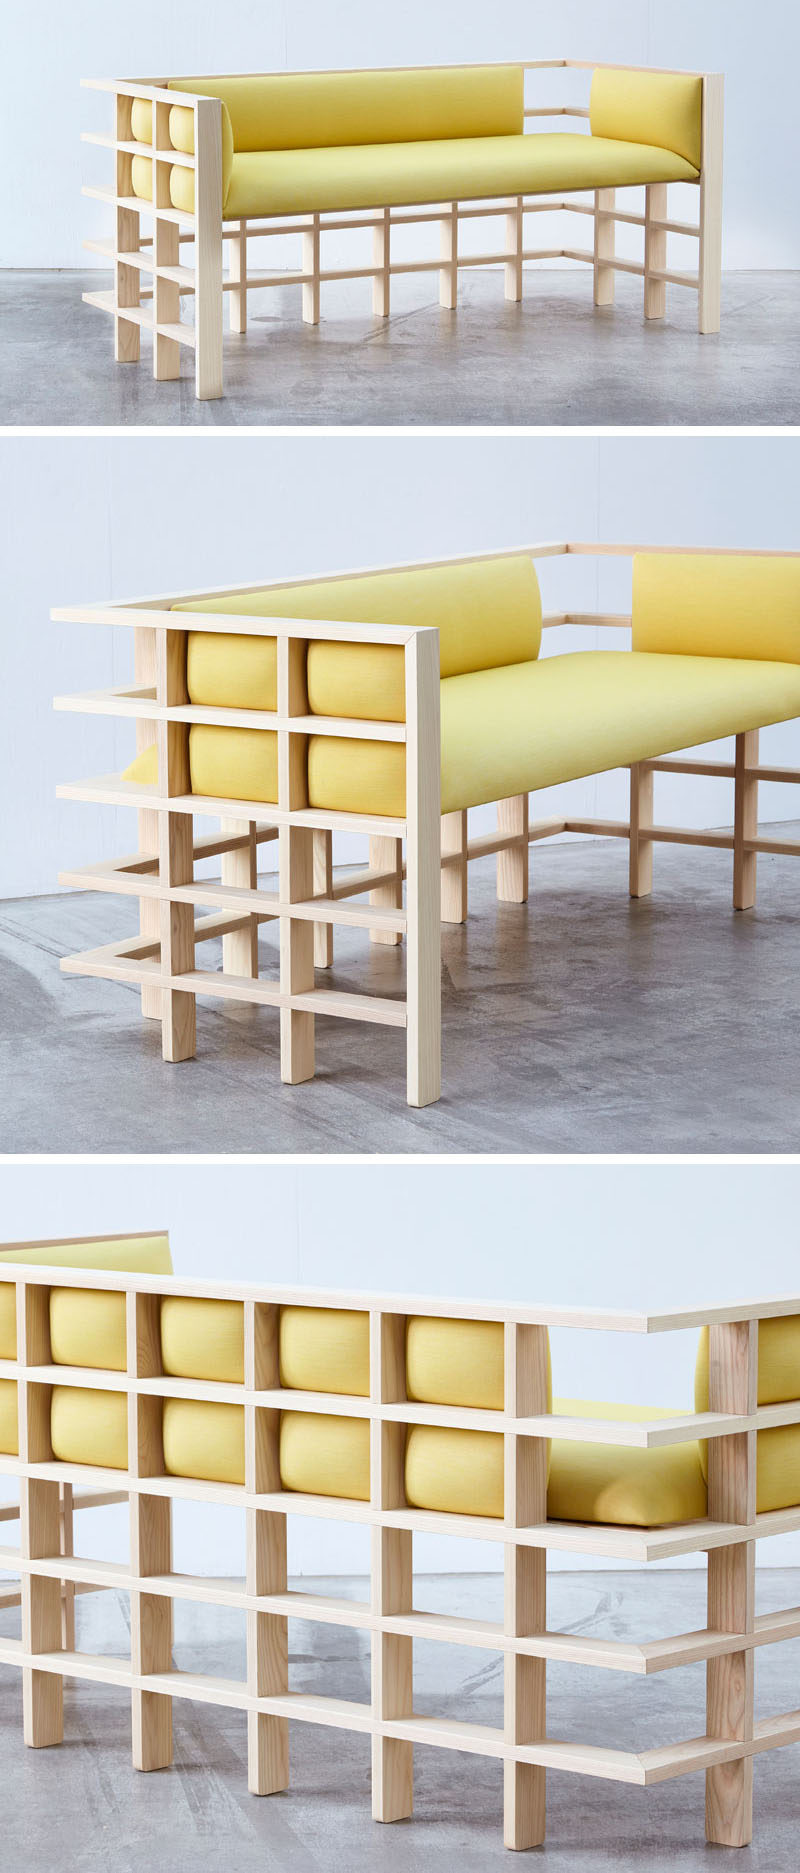 Australian based designerElliot Bastianon, has created a new modern furniture collection named 'Straight Lines'. #ModernFurniture #Design #Couch #Wood